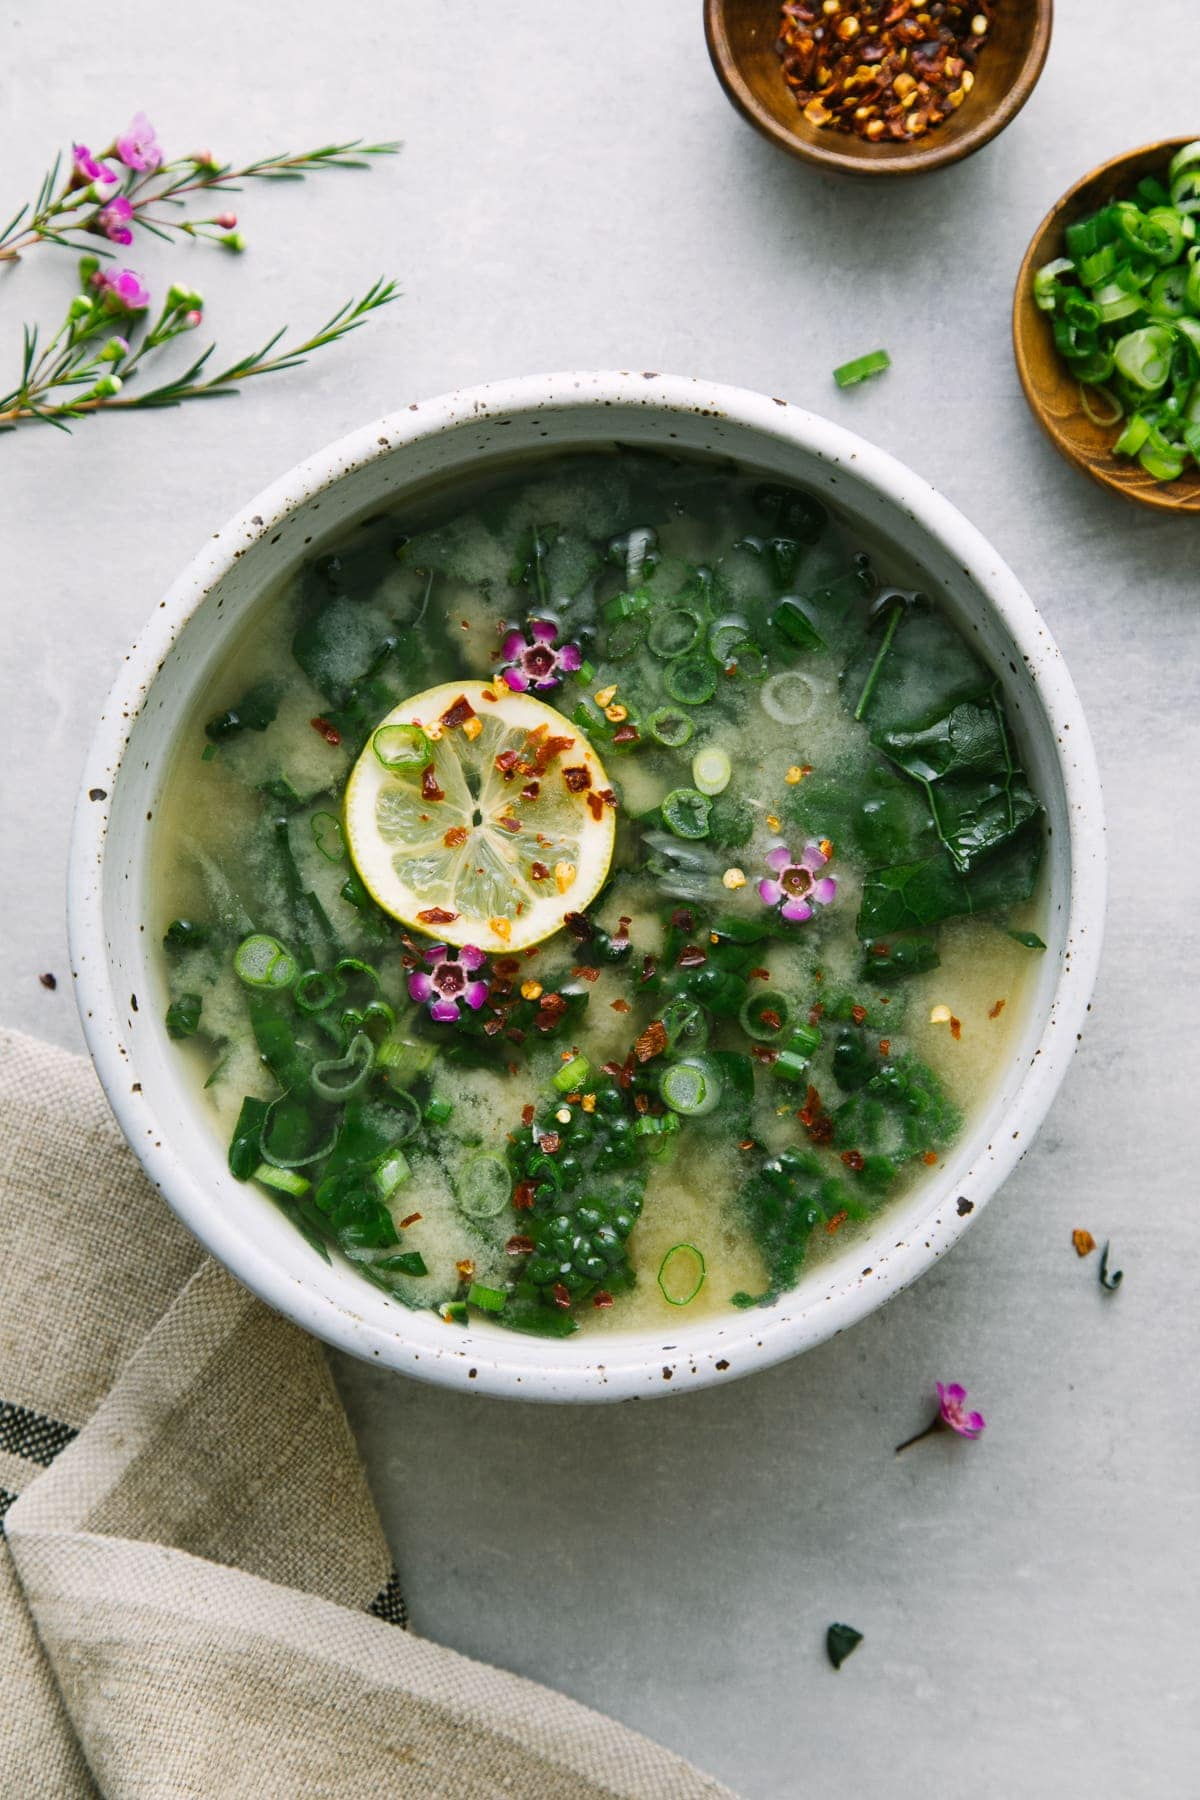 top down view of bowl with serving of garlic miso soup with kale and items surrounding.